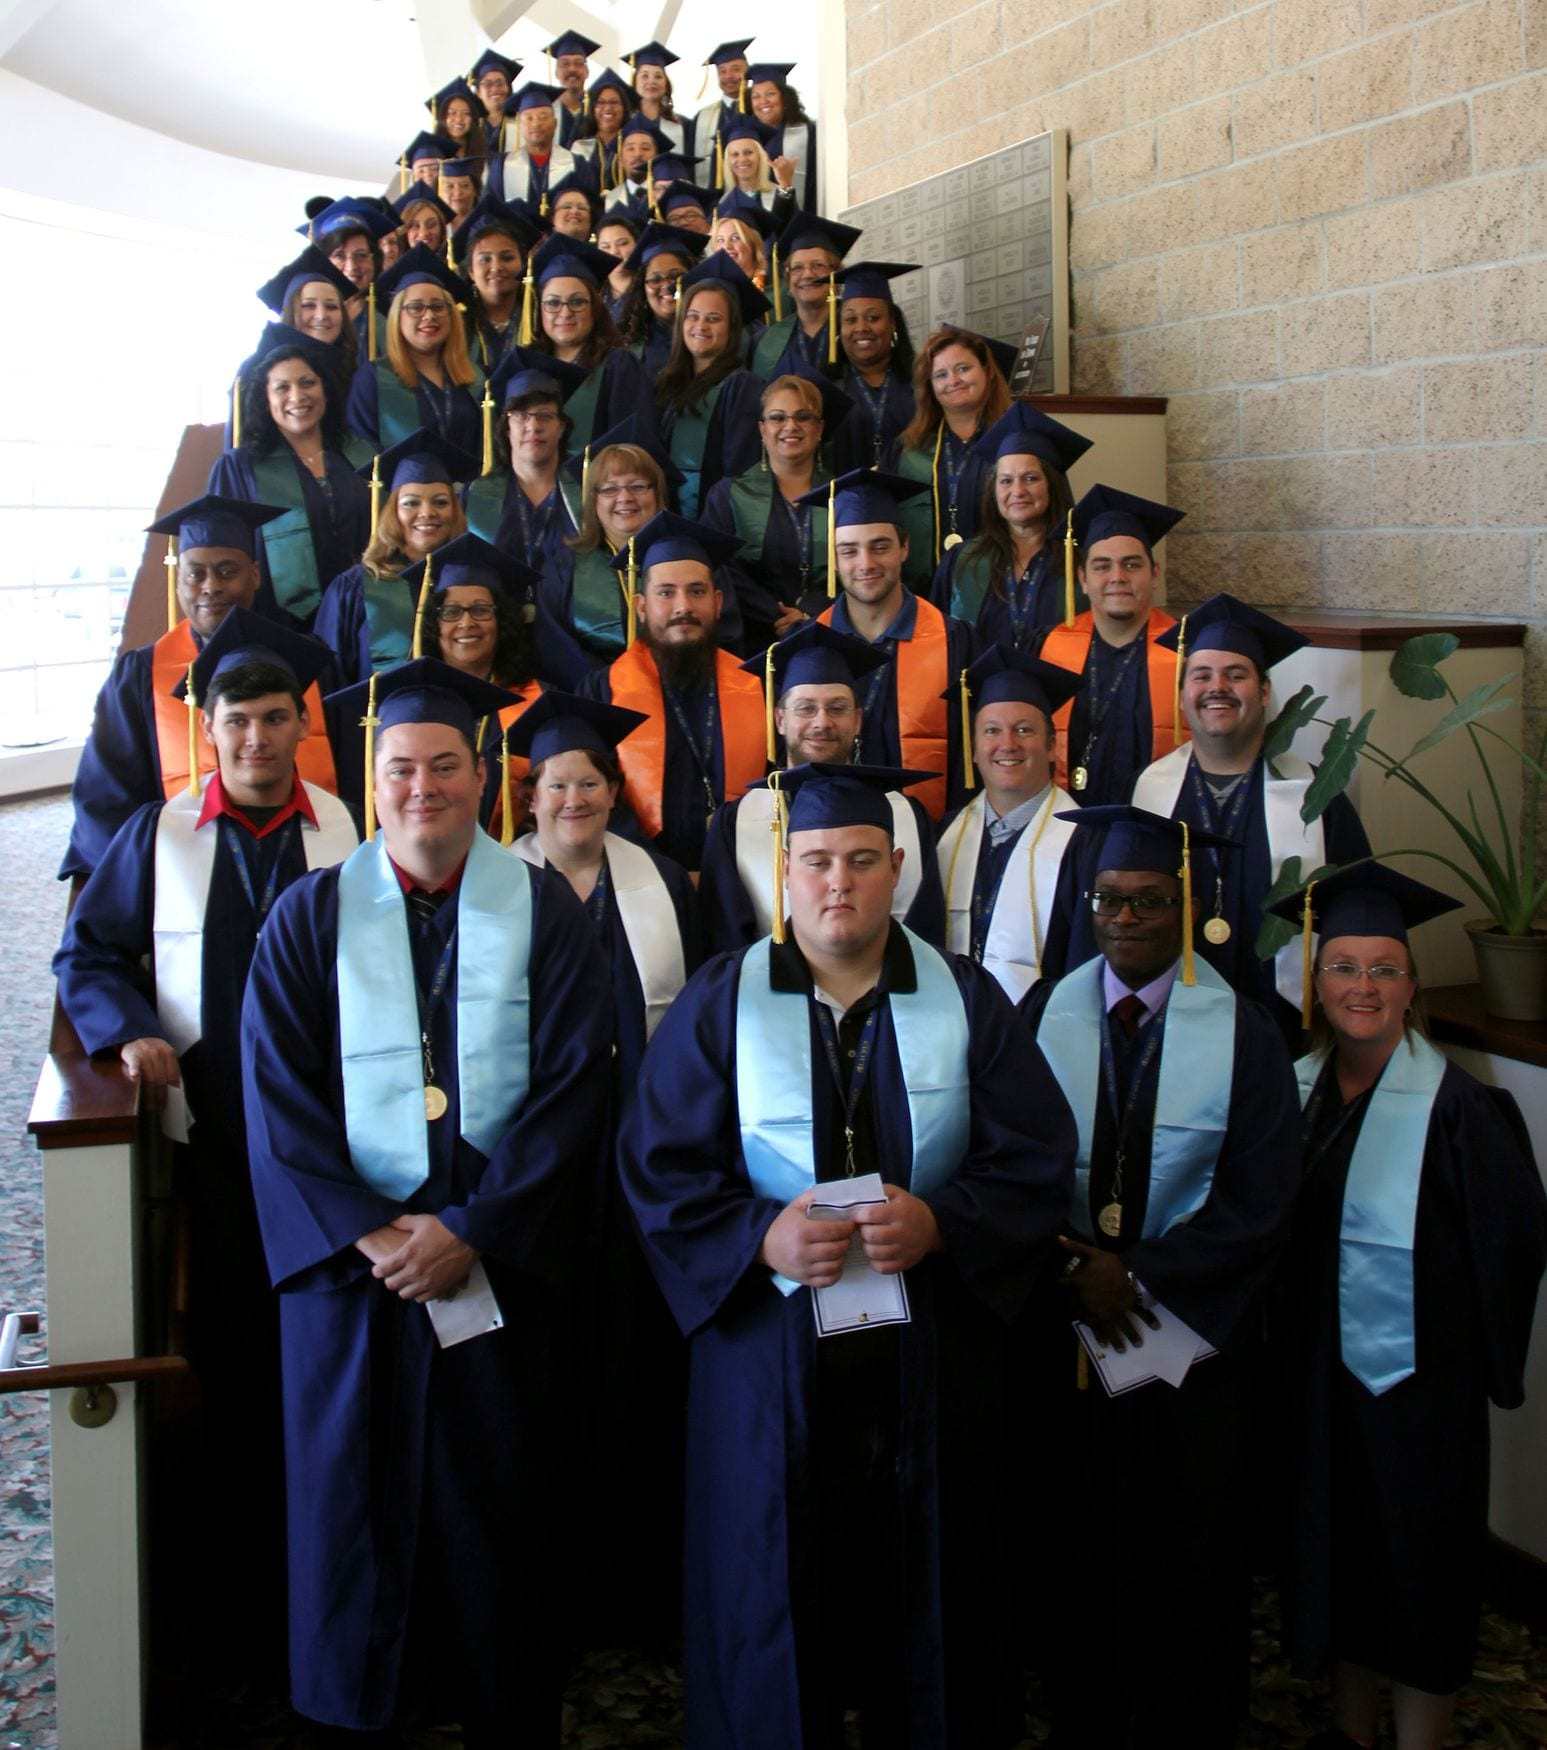 Laurus-College-Commencement---Class-of-2015-16